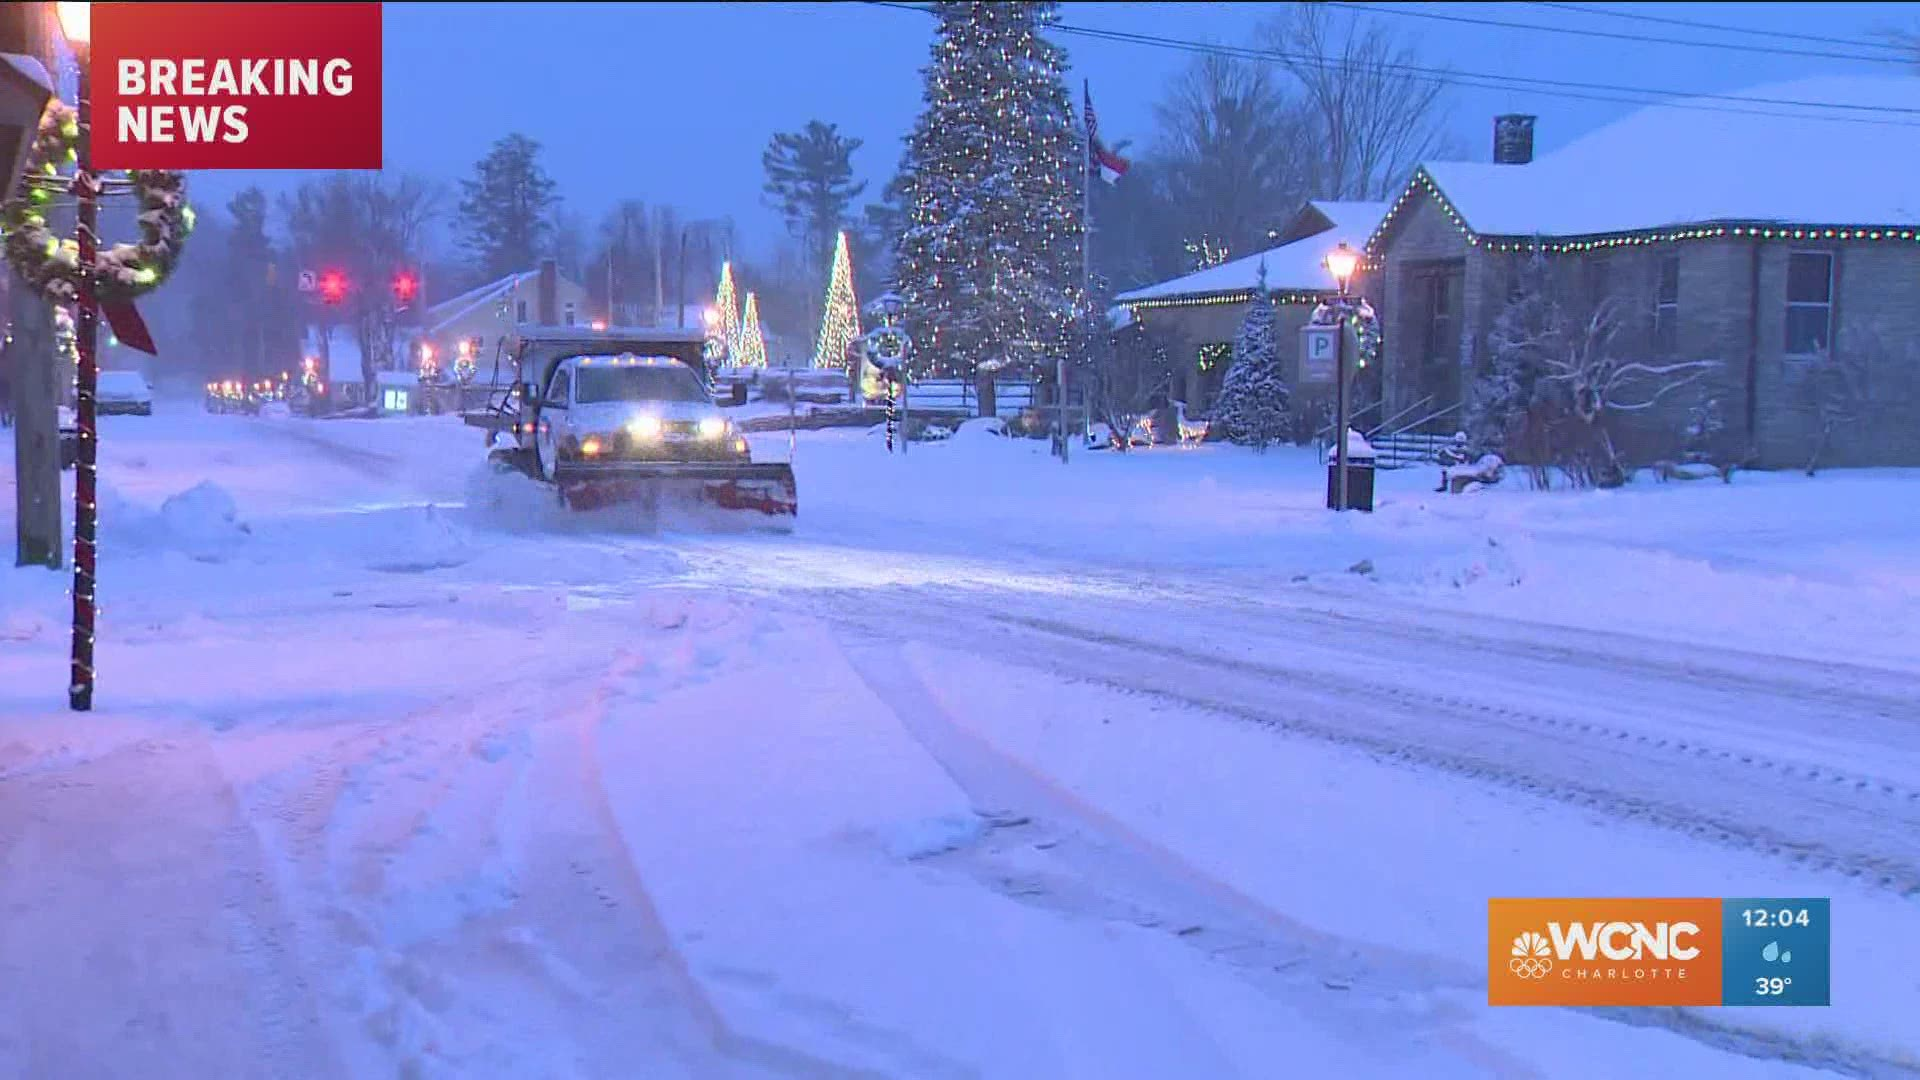 Christmas Show 2021 Charlotte Nc Winter Storm Dumps Heavy Snow In Nc Mountains Up To 1 Possible In Charlotte Wcnc Com